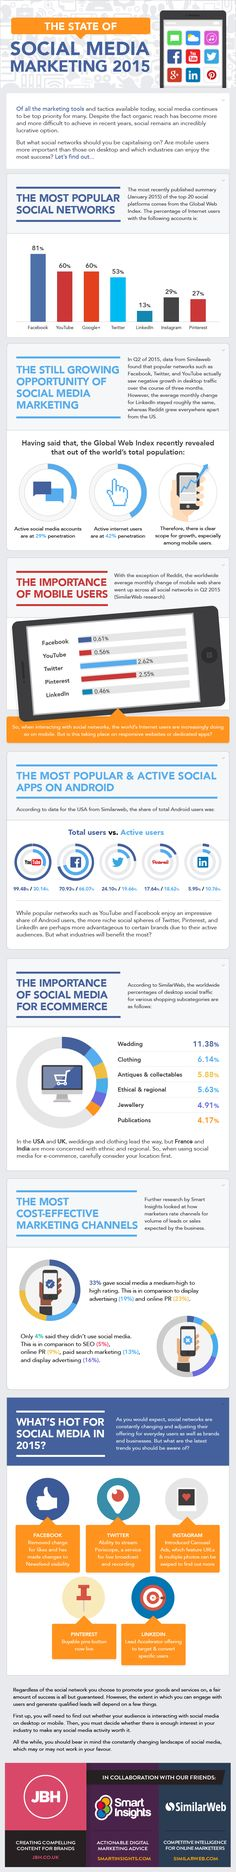 The 2015 State of Social Media Marketing [INFOGRAPHIC]   Social Media Today